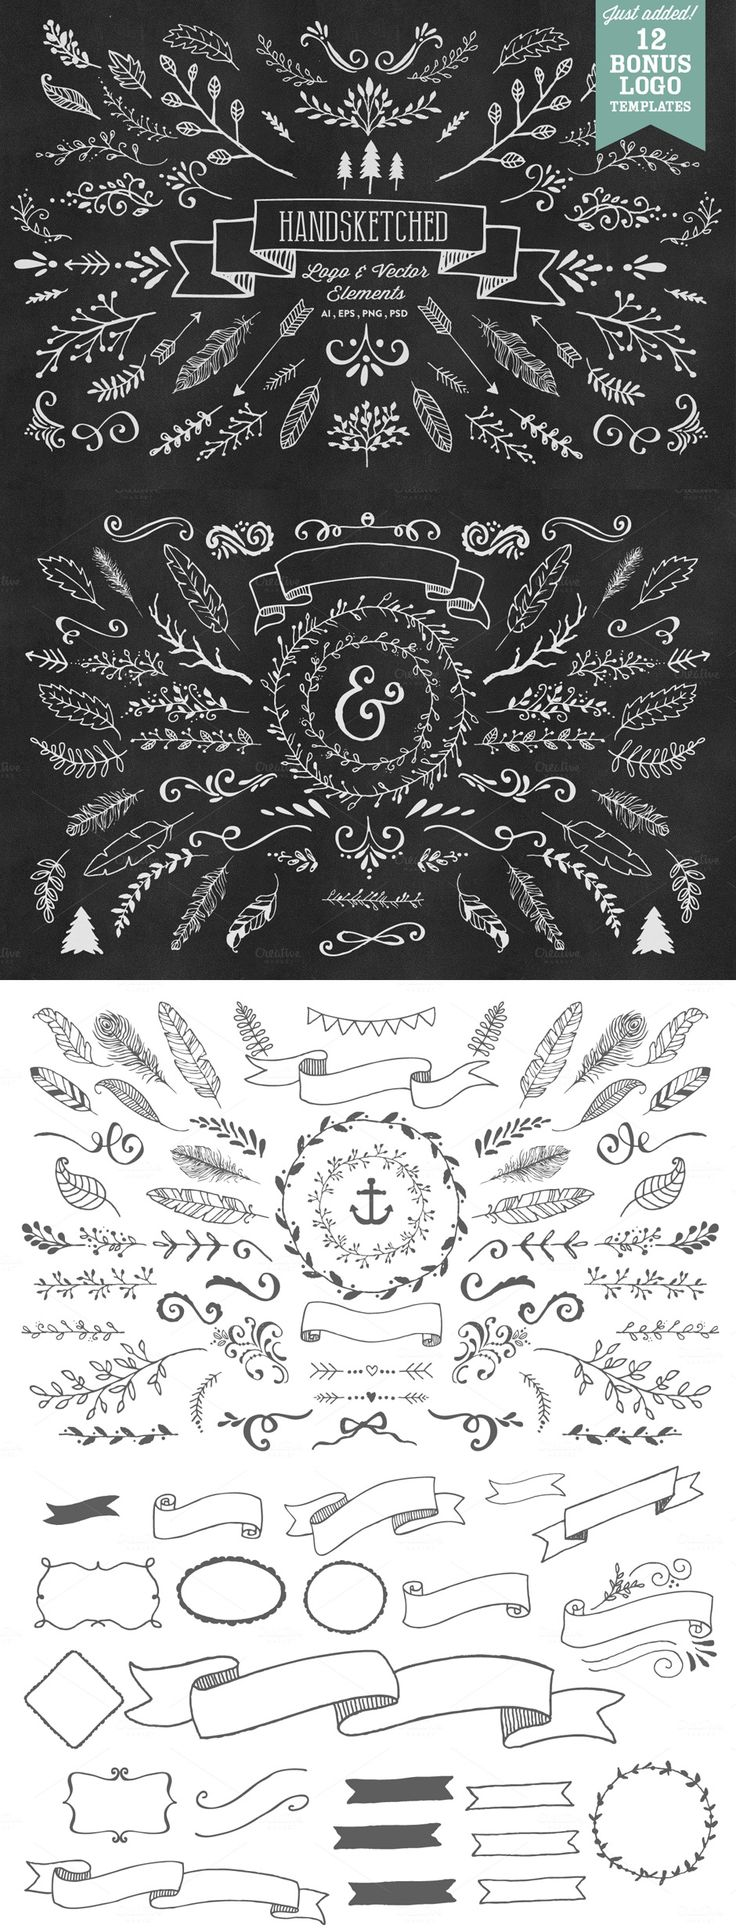 This is just 1 of the 33 sets of designs in the Ultimate Vector Elements Collection - $29 for the next 9 days